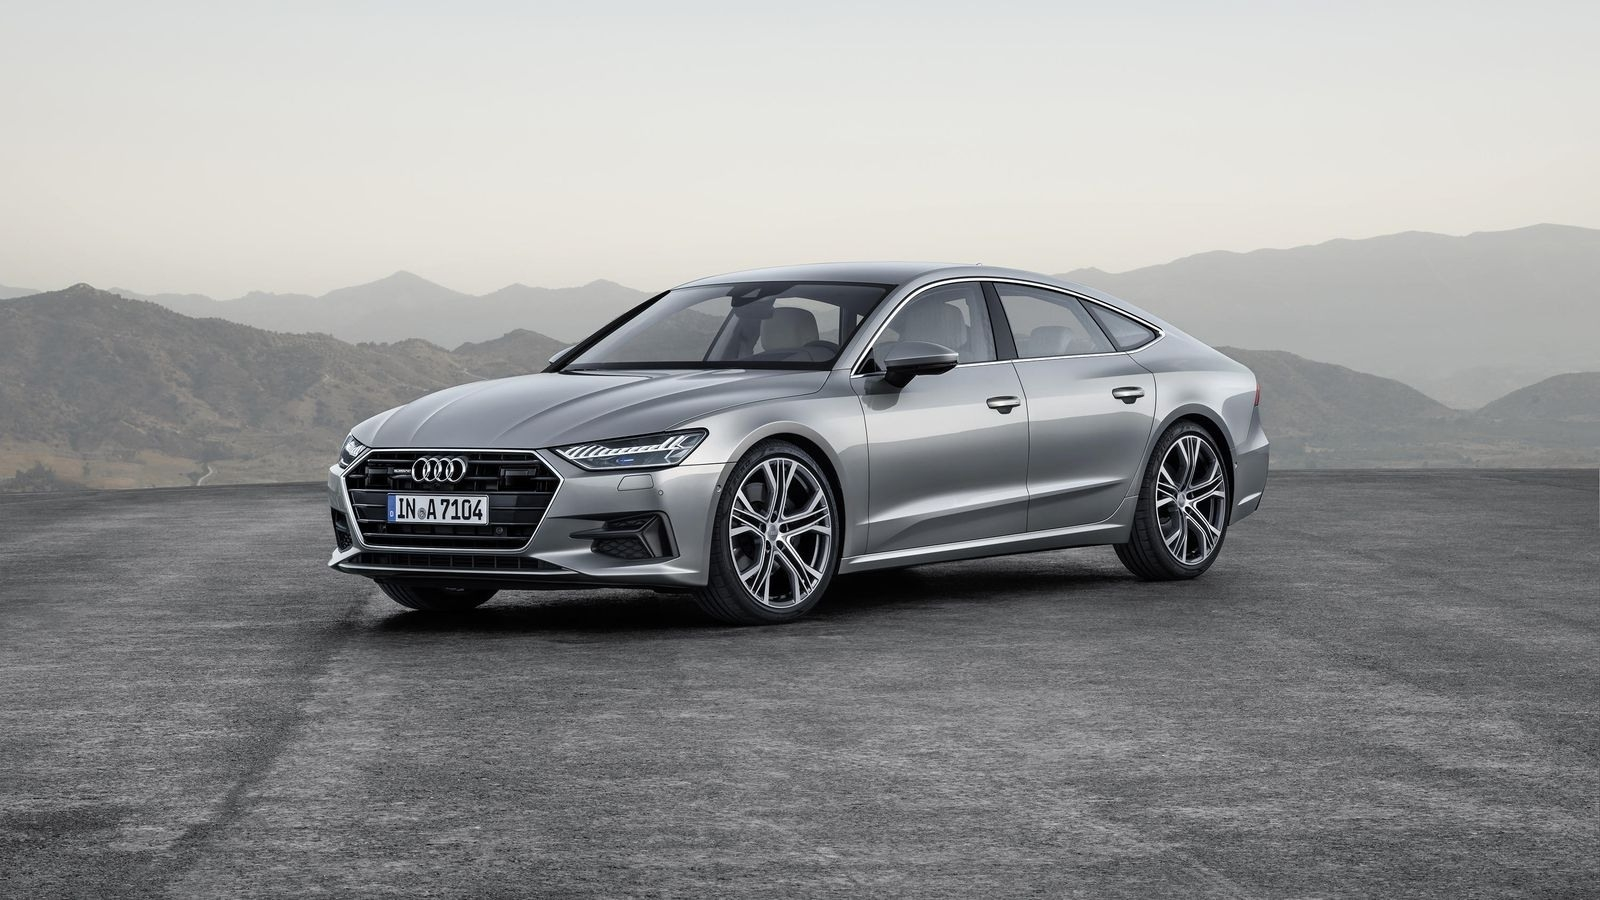 37 All New 2020 Audi A7 Colors Prices